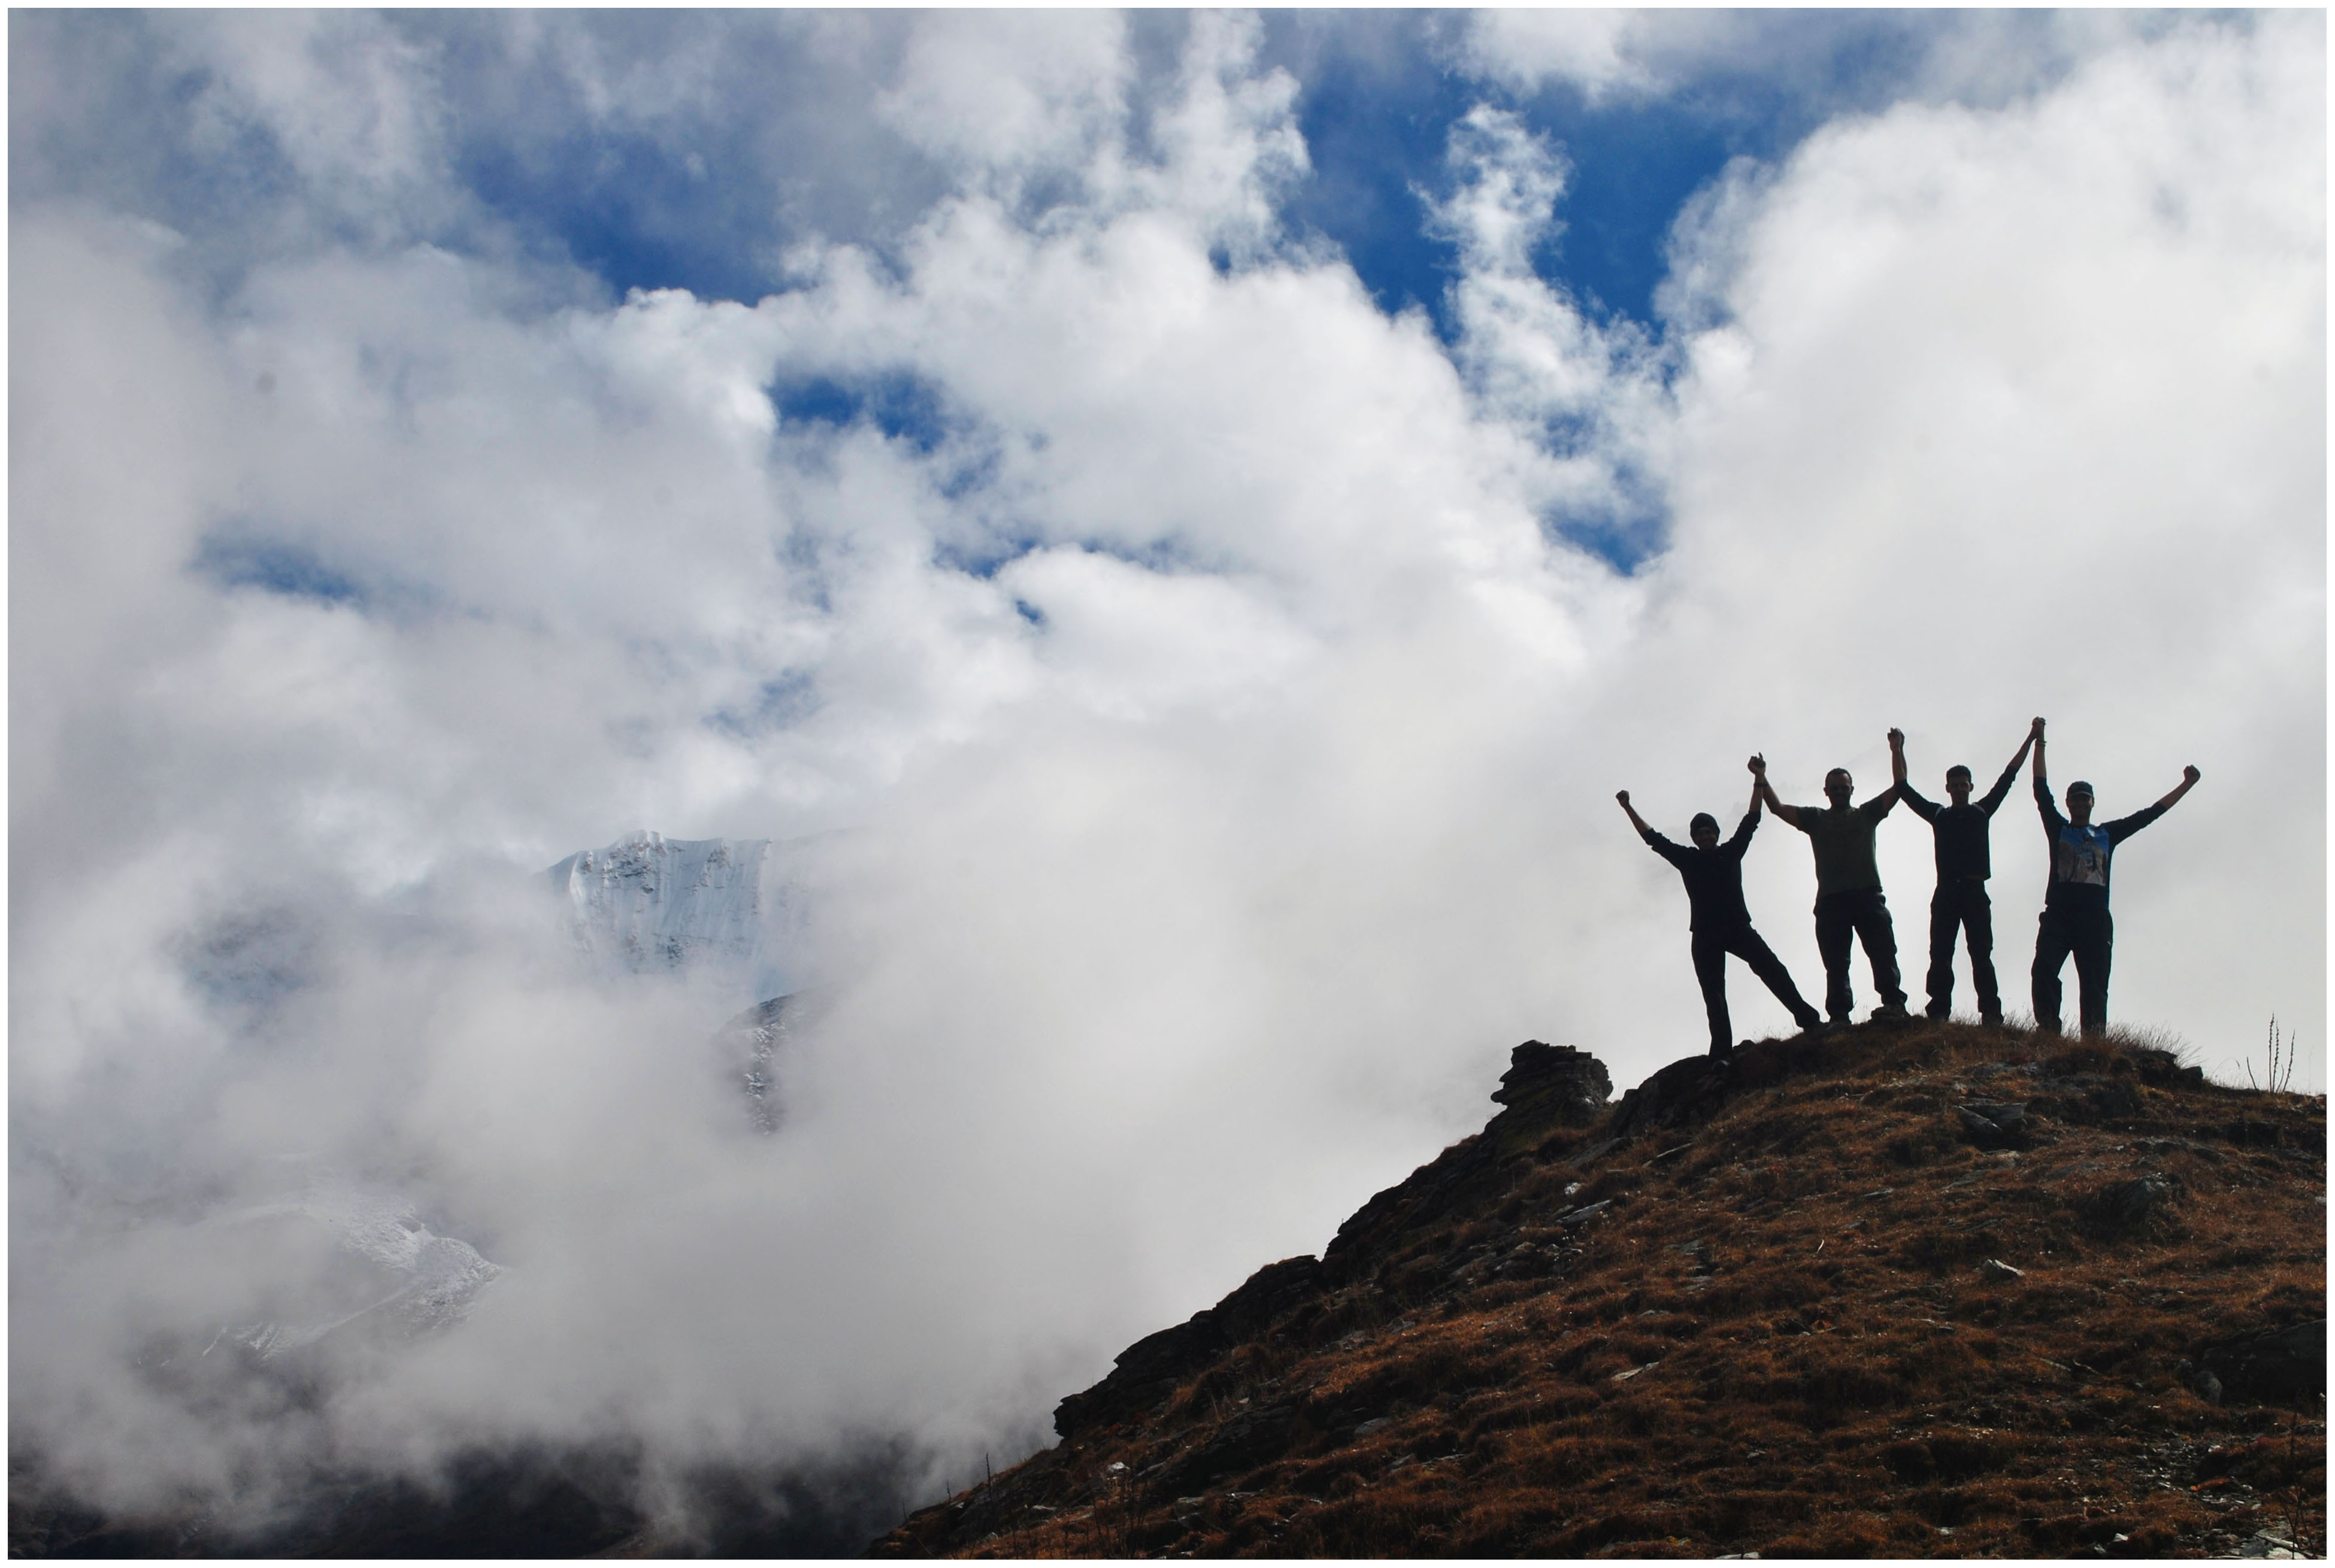 Visit Roopkund with your friends, make a lifetime's worth of memories